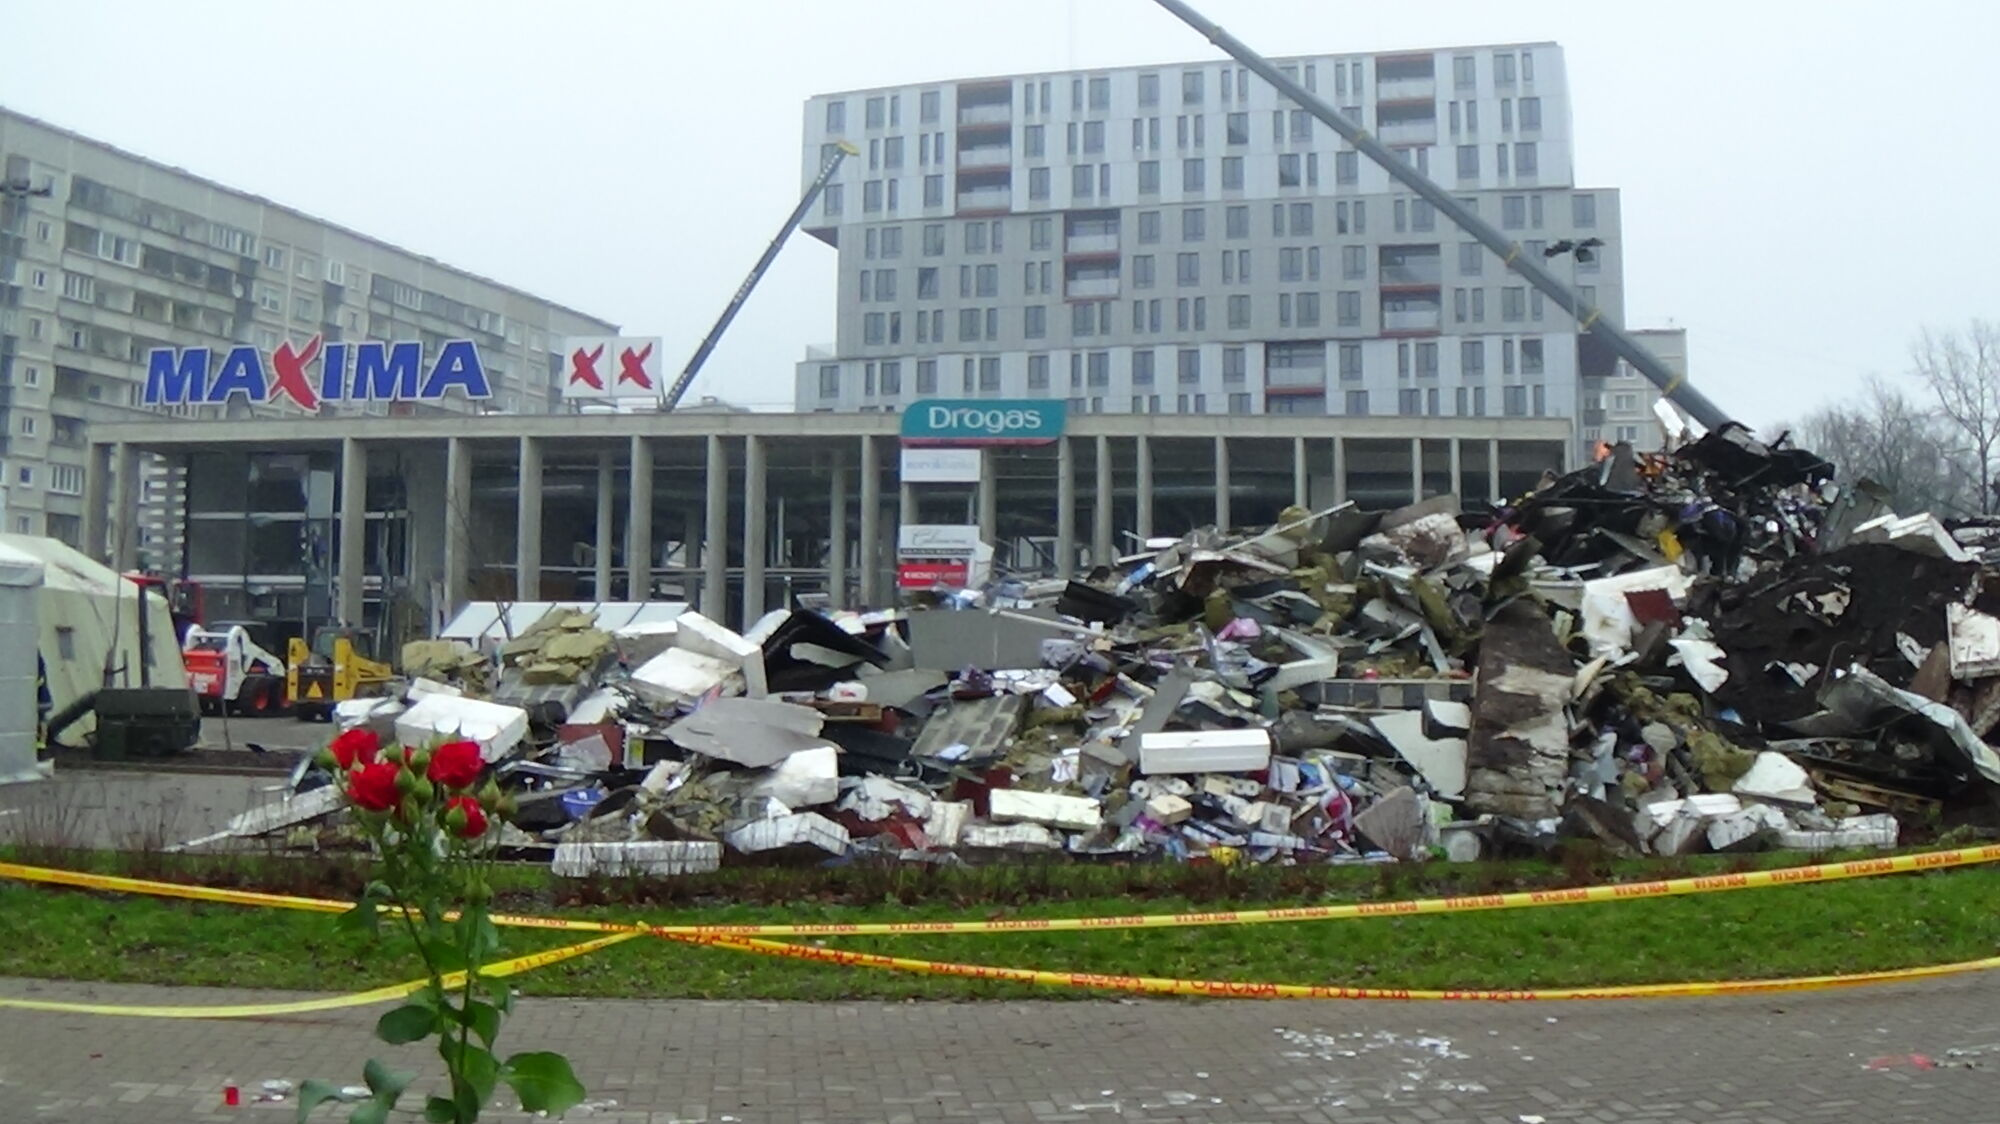 21 11 2013 Riga Supermarket Roof Collapse Baltic States